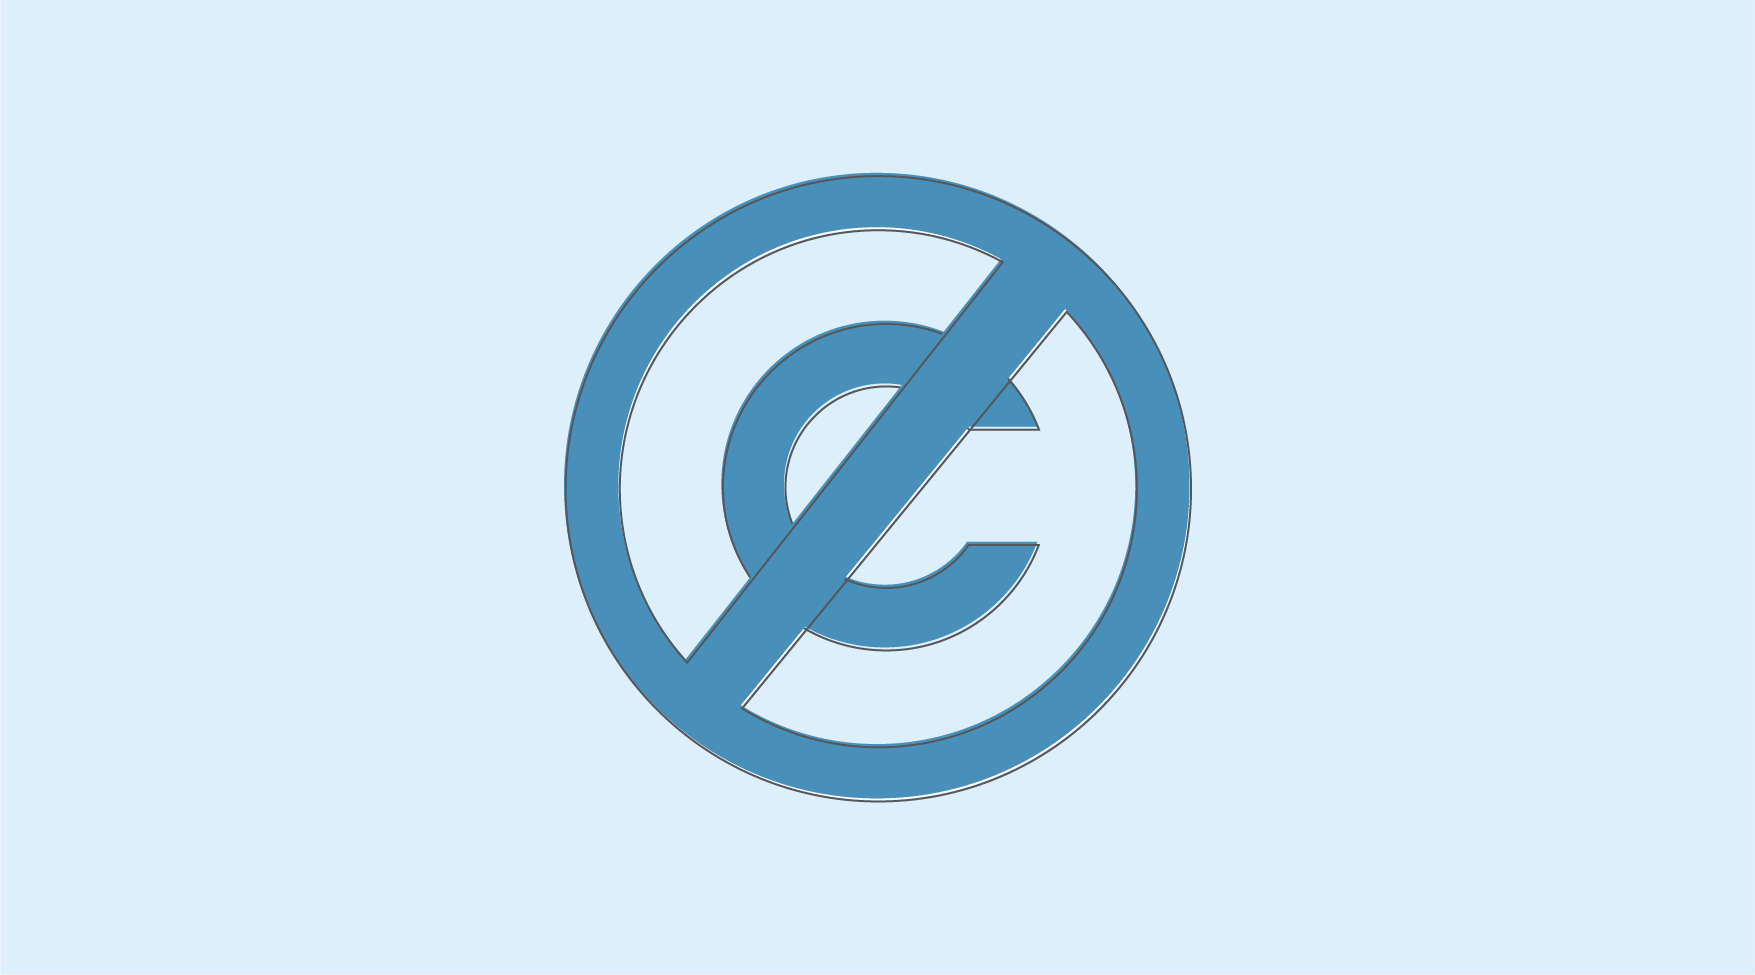 An image of the Creative Commons Public Domain badge symbol.